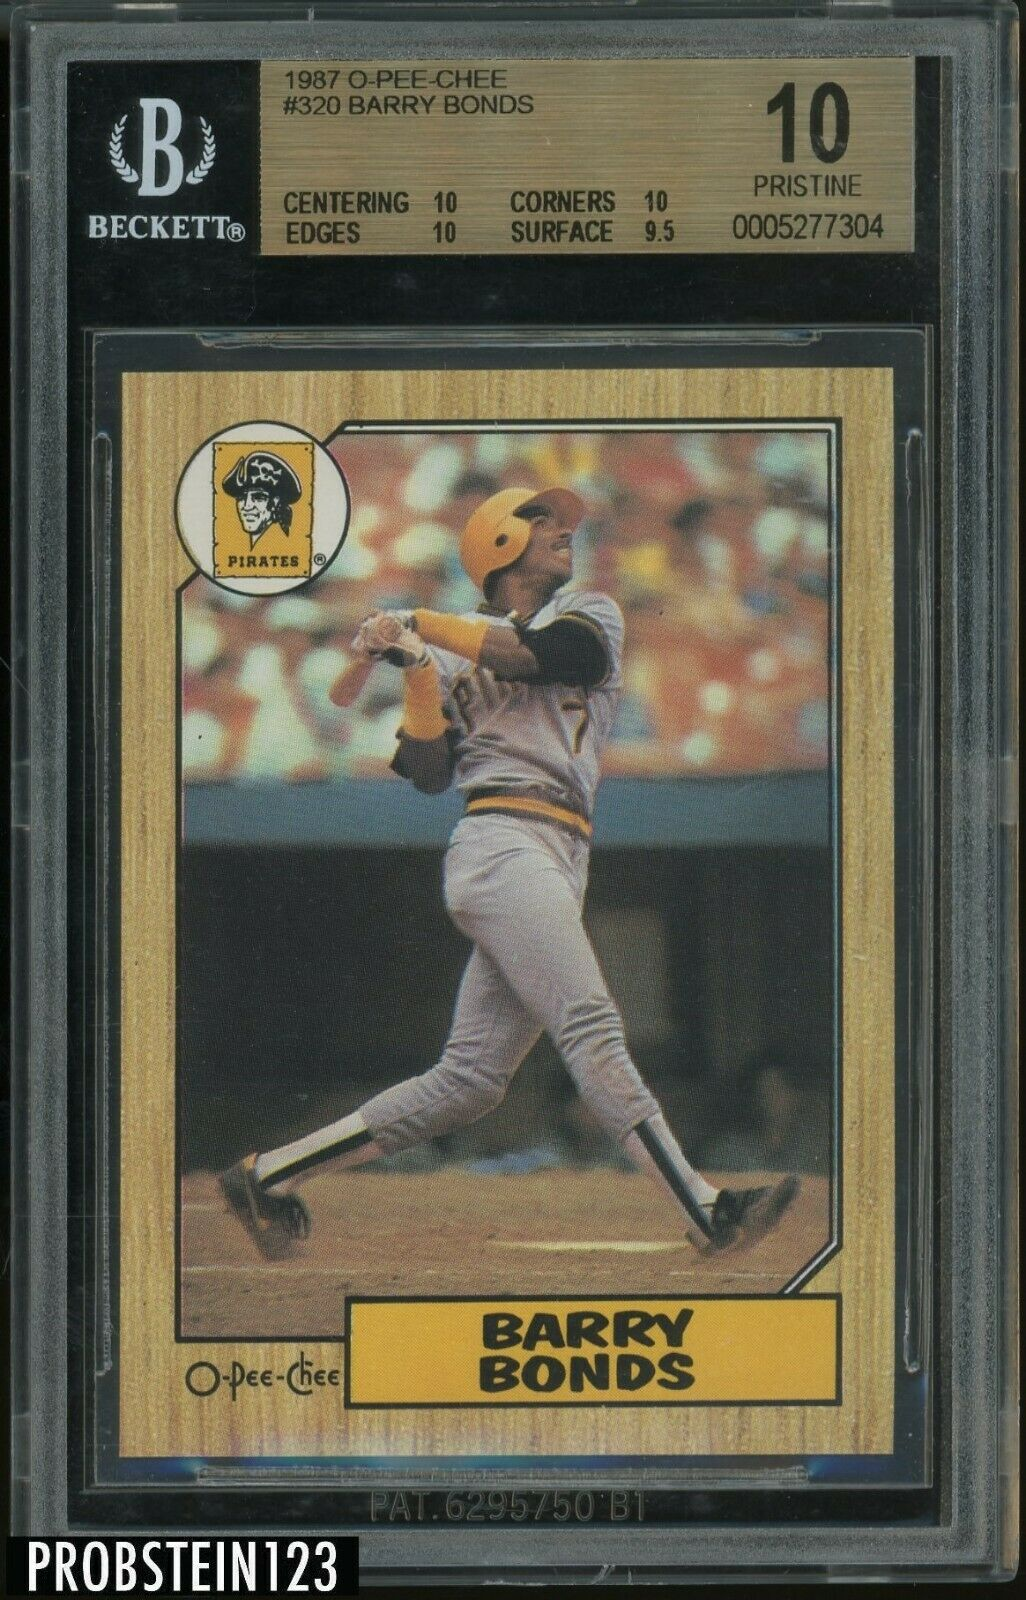 1987 OPeeChee OPC 320 Barry Bonds Pirates RC Rookie BGS 10  SUPER LOW POP